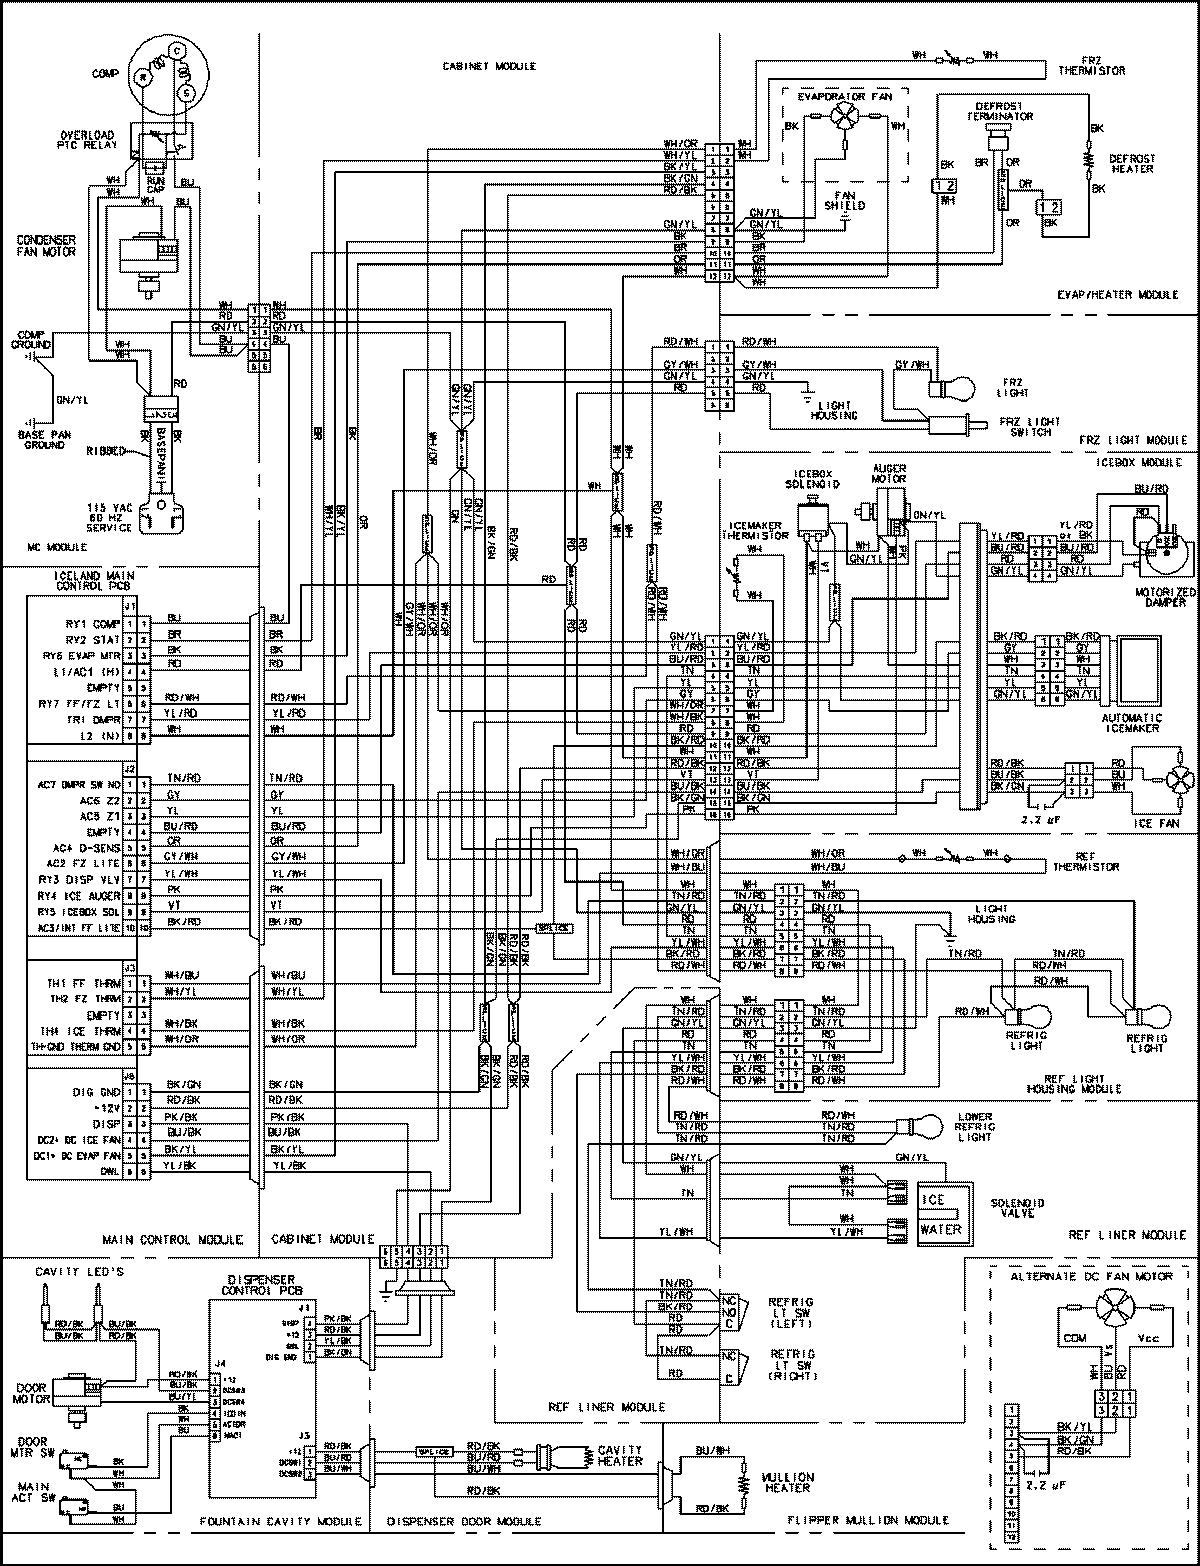 Refrigerator Parts Schematic